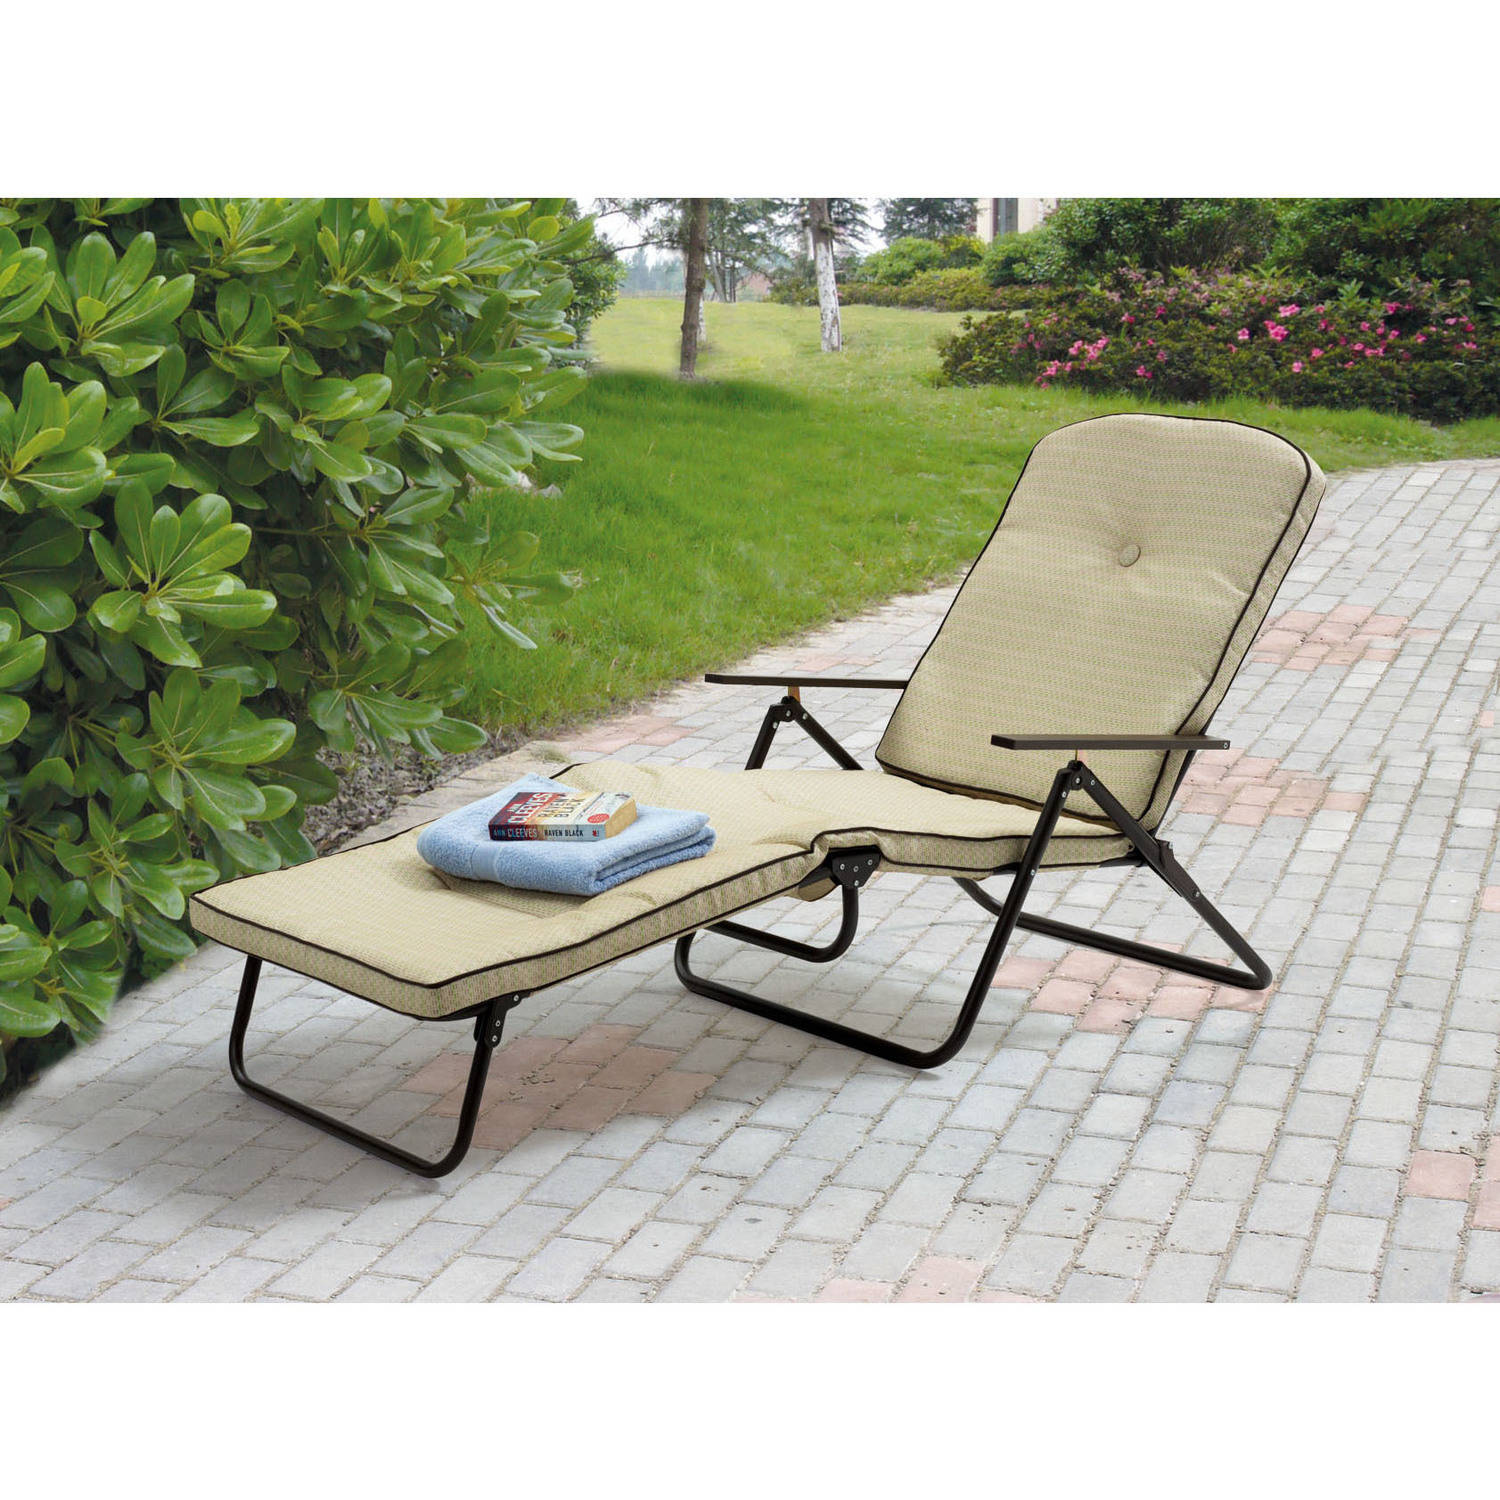 Mainstays Sand Dune Outdoor Padded Folding Chaise Lounge, Tan   Walmart.com